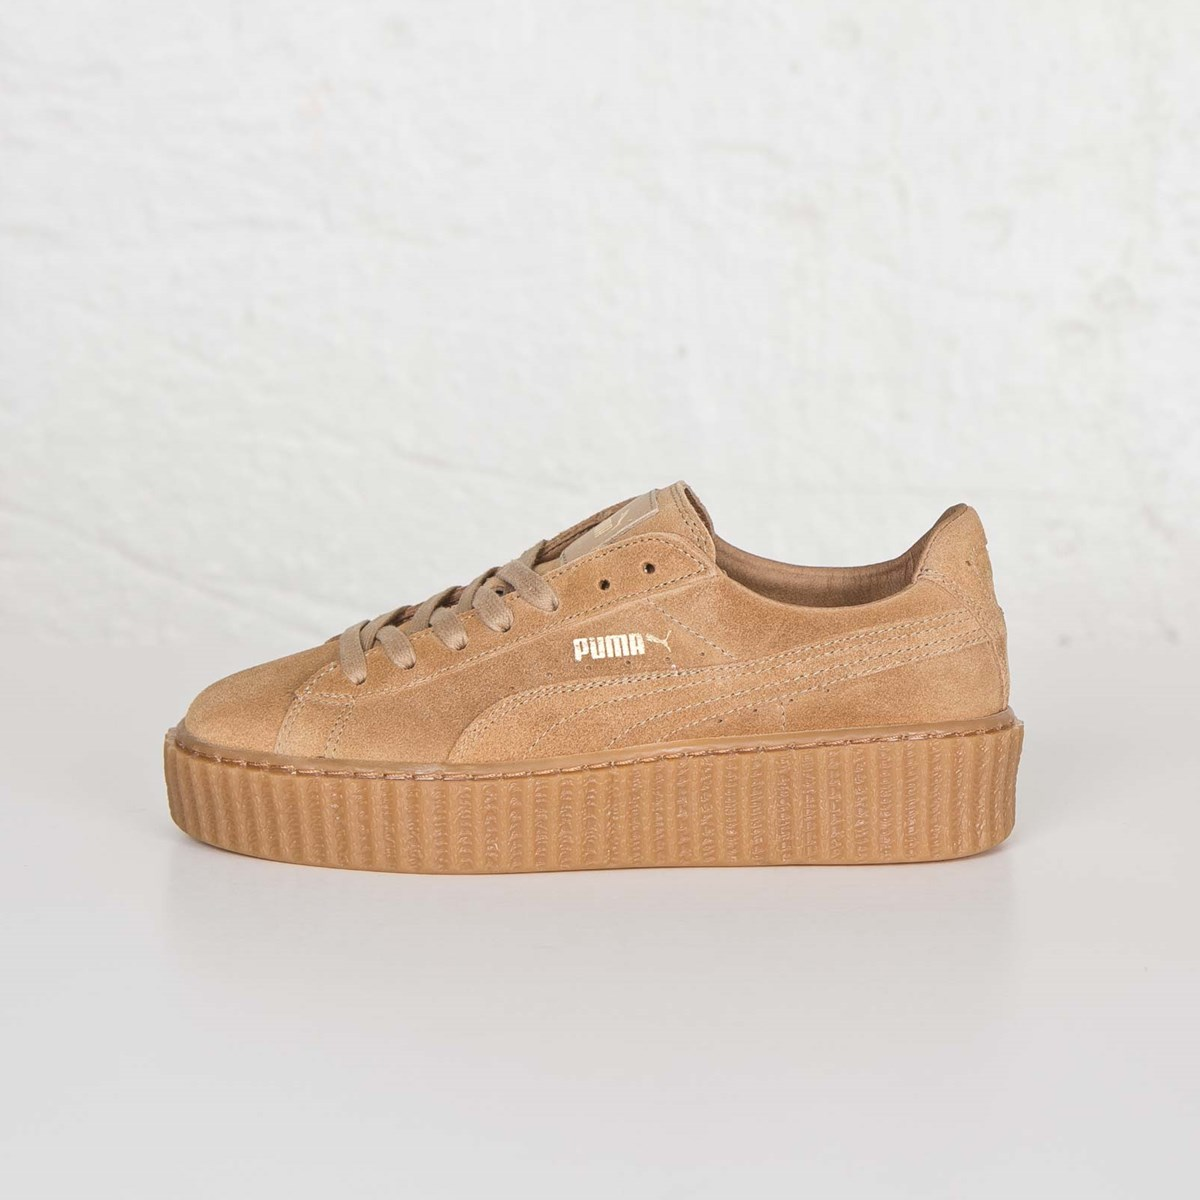 Puma Suede Creepers - 361005-03 - Sneakersnstuff  3890e1d81